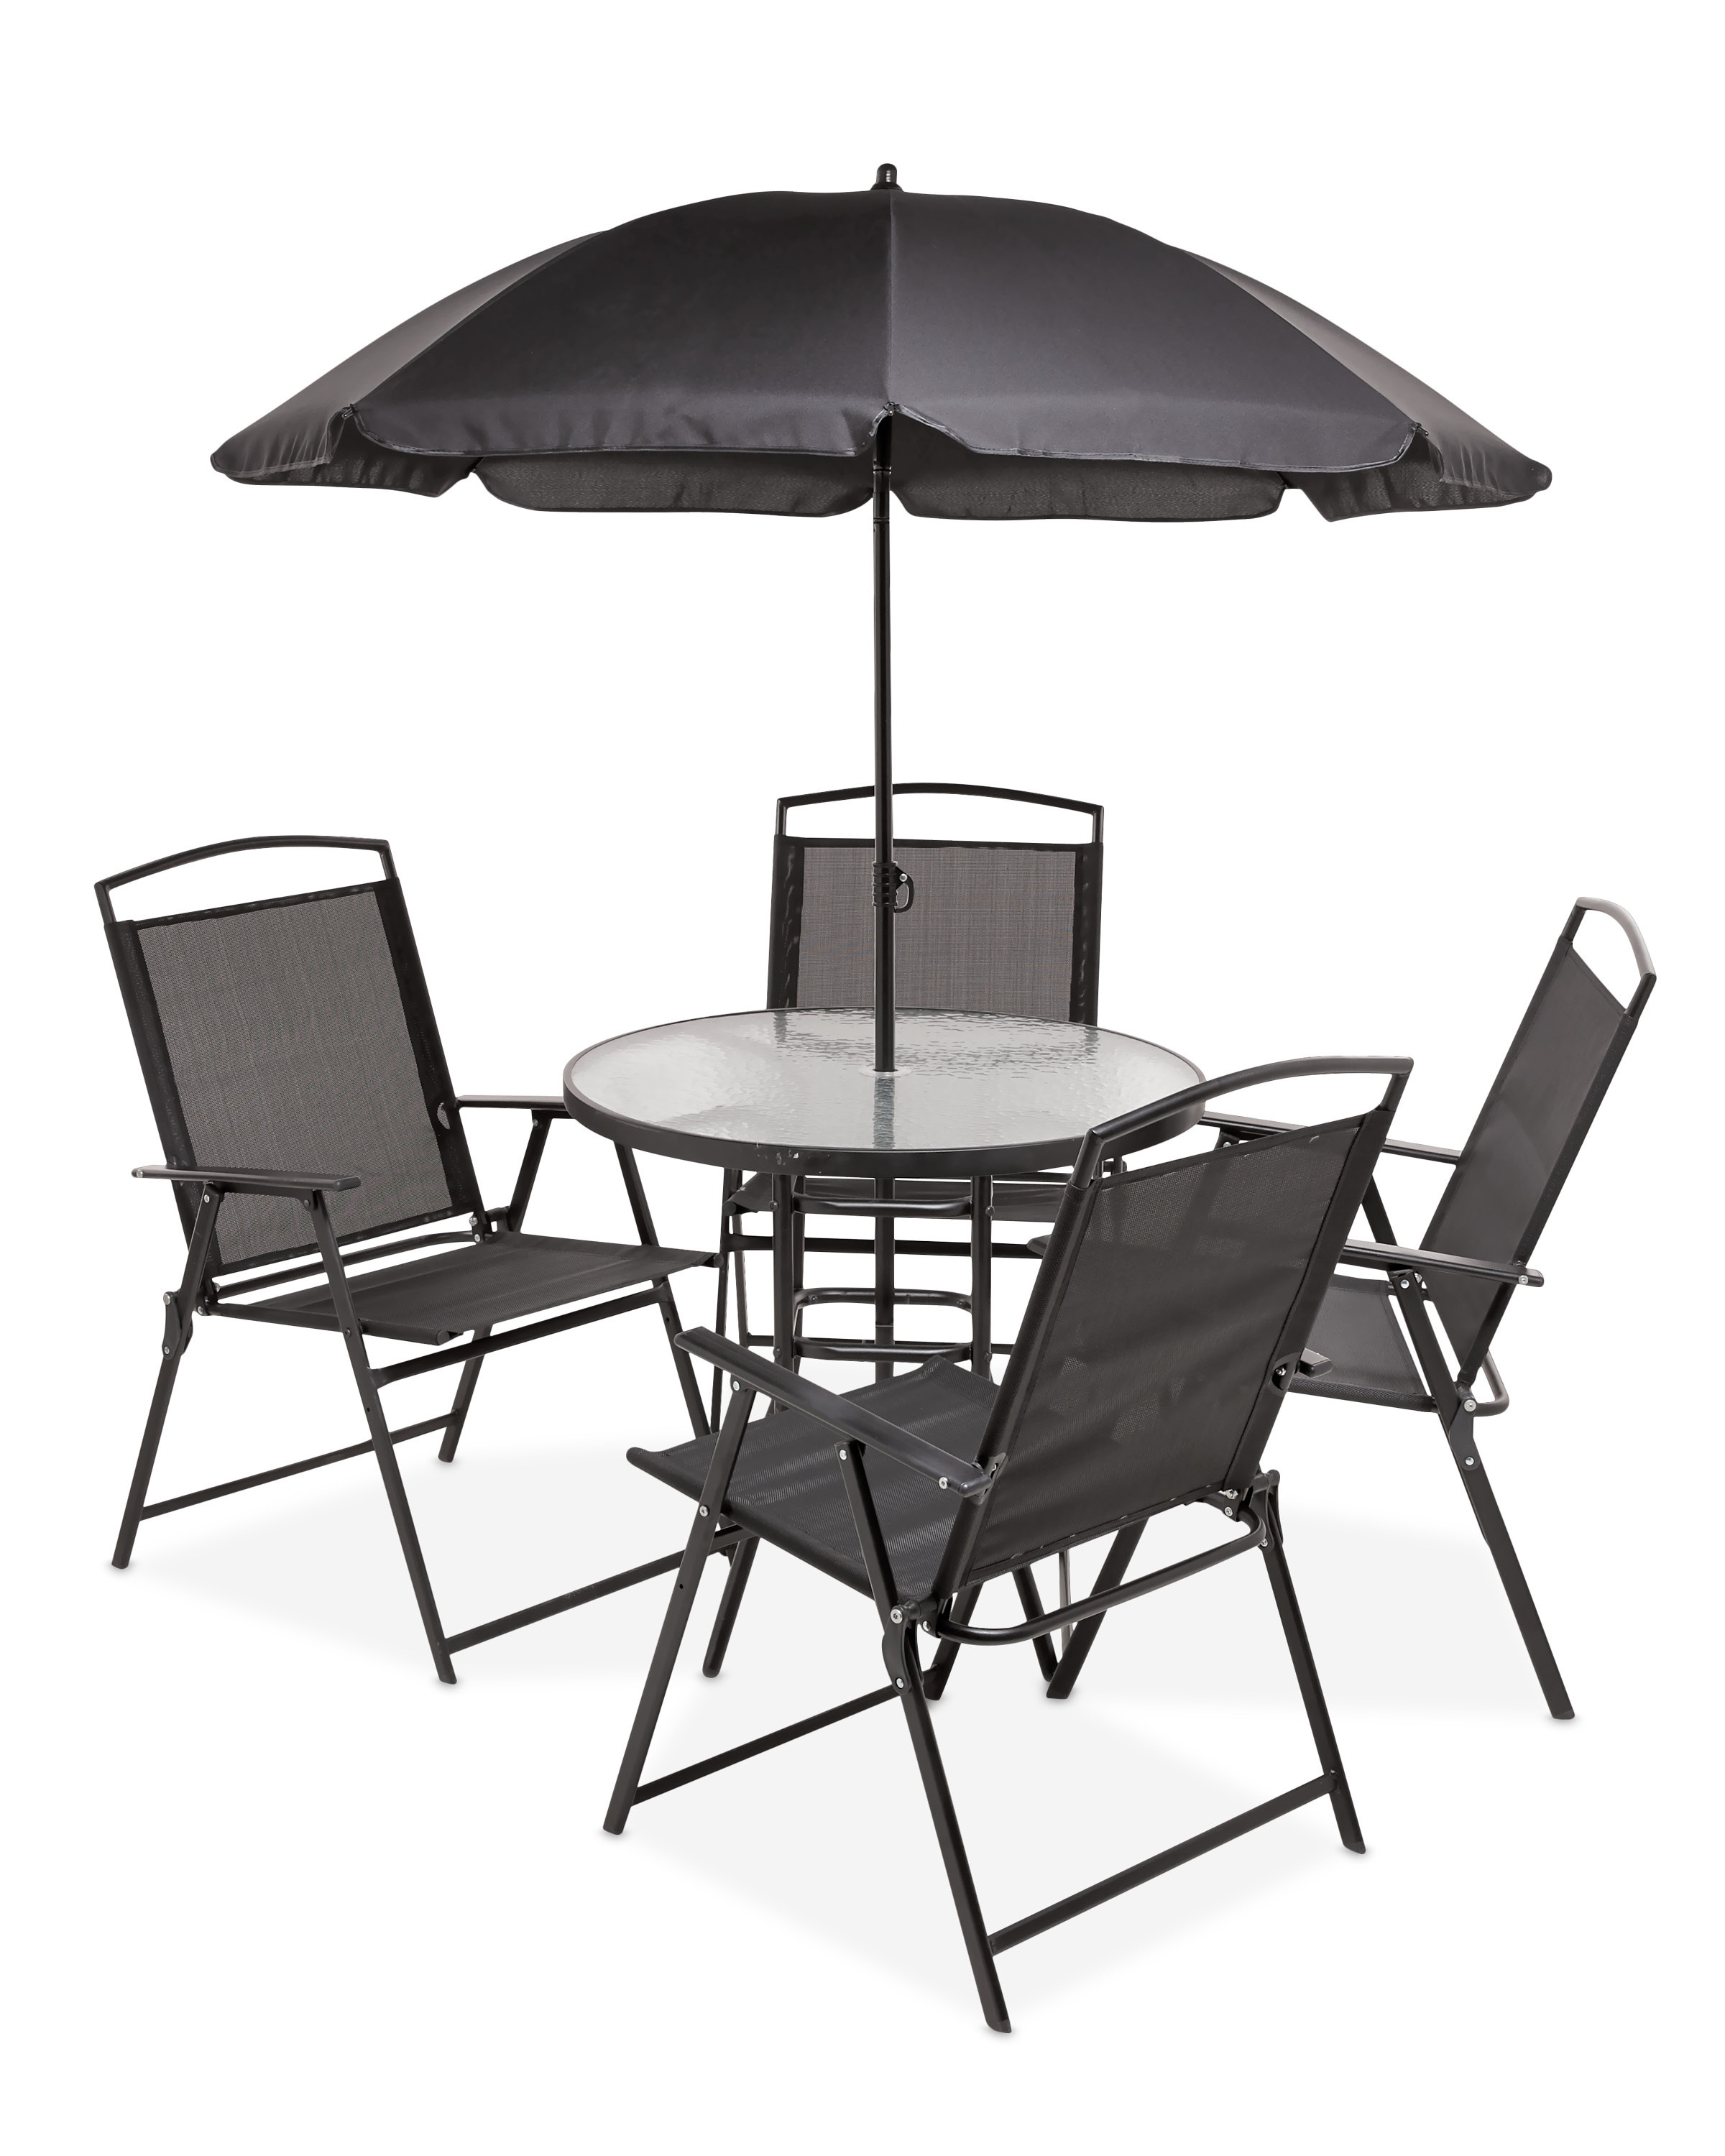 6-Piece Garden Furniture Set - ALDI UK